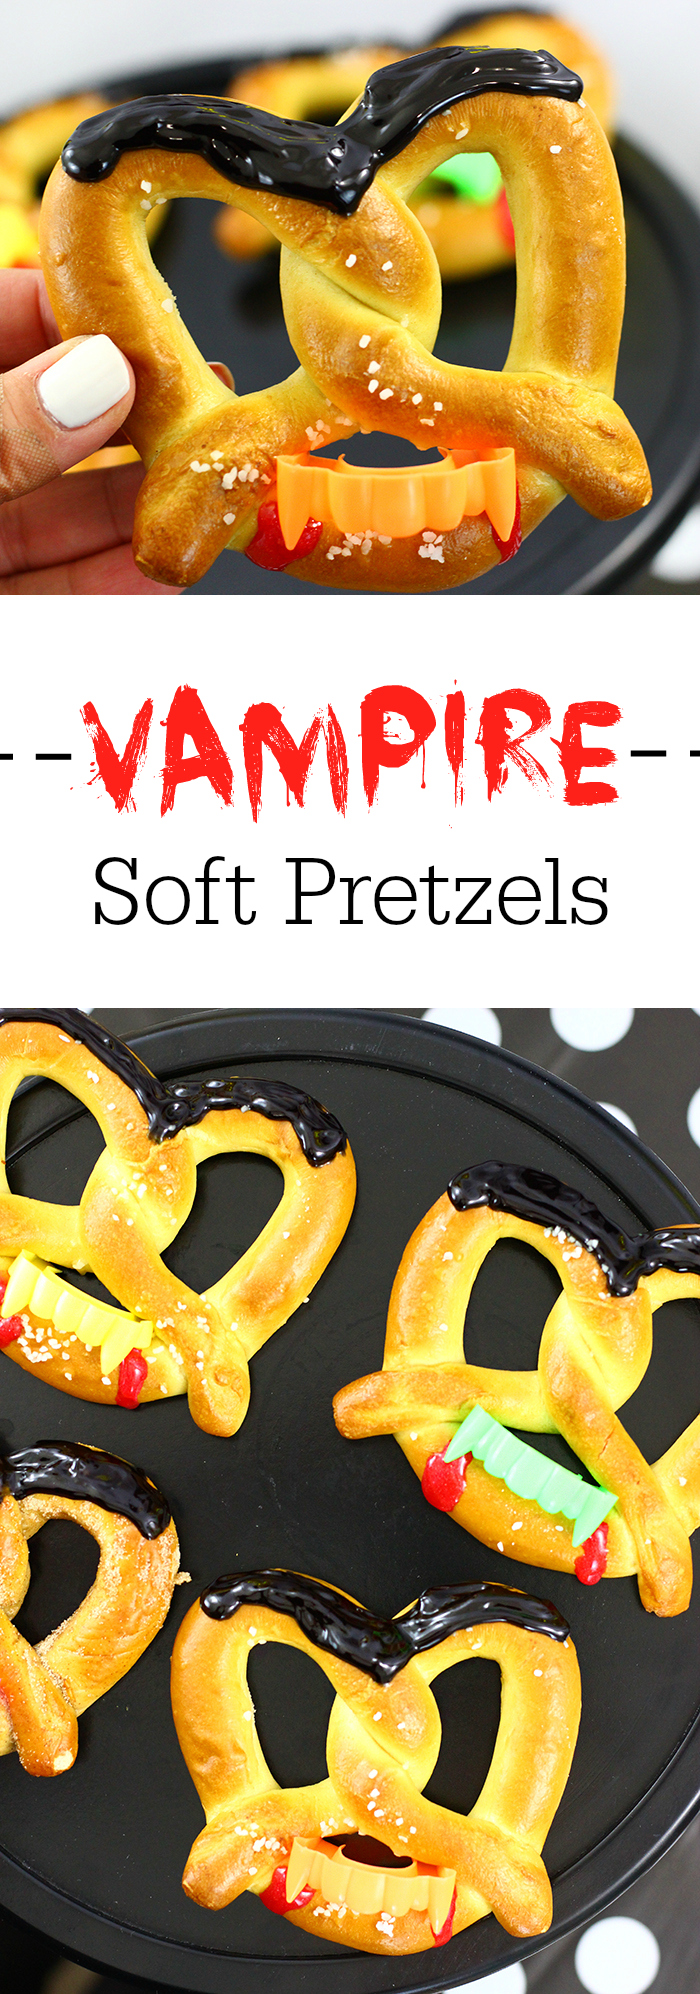 Vampire Soft Pretzels and Delicious Halloween Shake Ideas